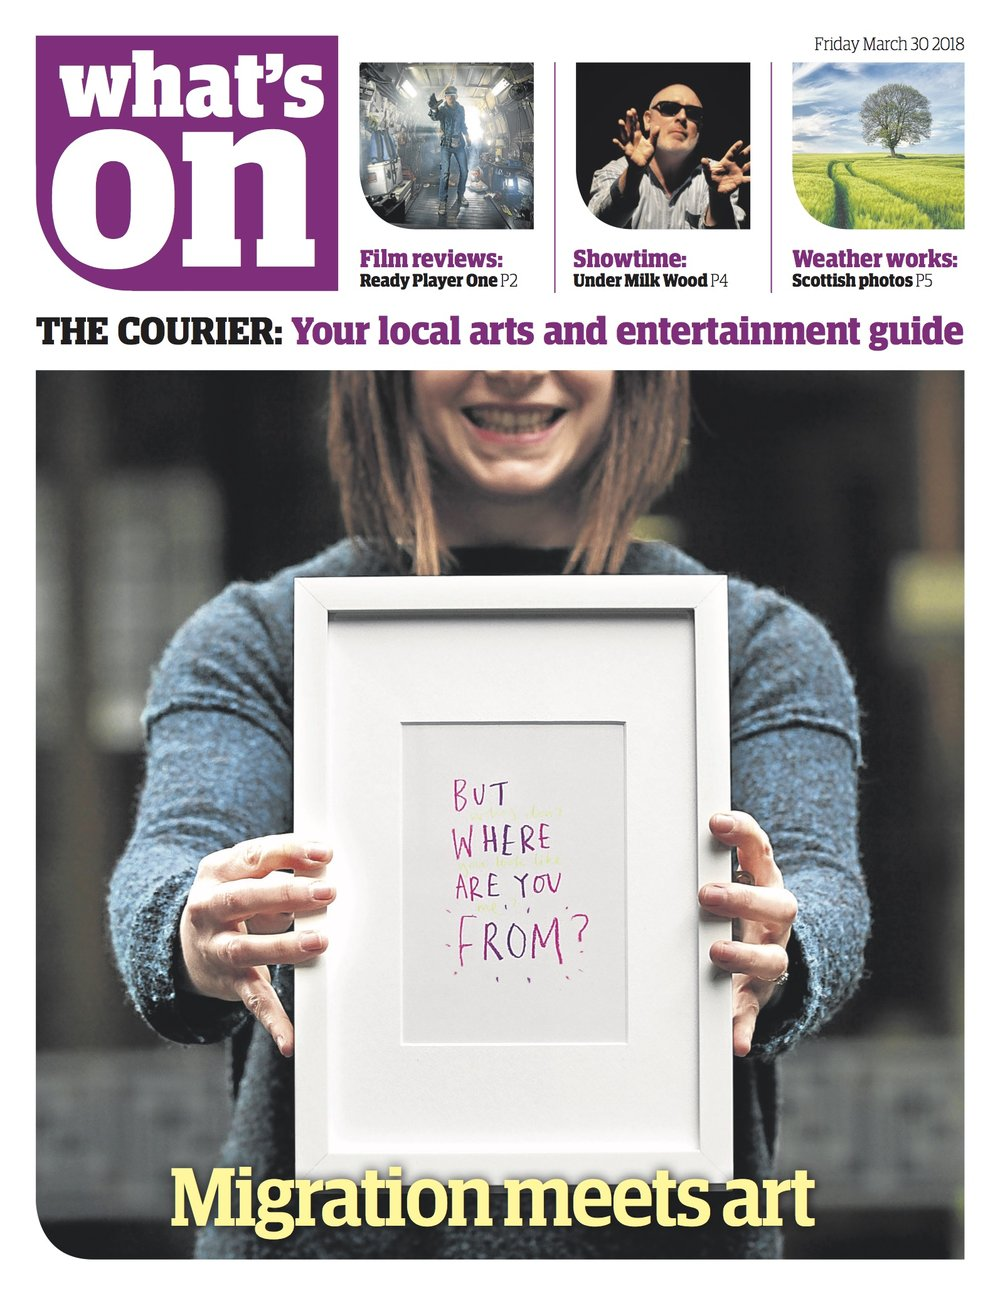 Cover story for The Courier newspaper's arts section, What's On